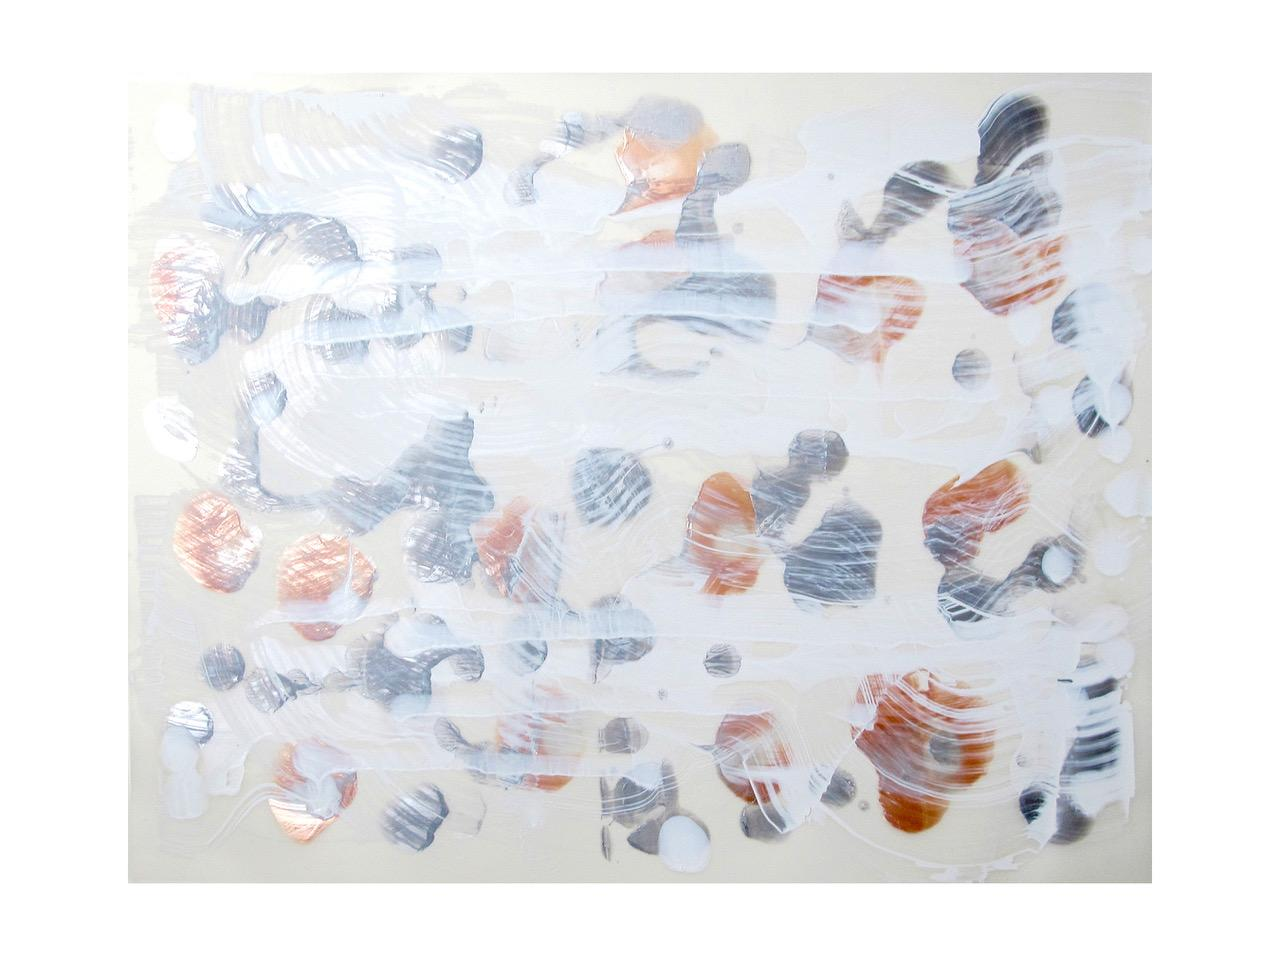 """Gudrun Mertes-Frady """"BETWEEN THE LINES #8"""" -- Abstract Painting on Paper"""